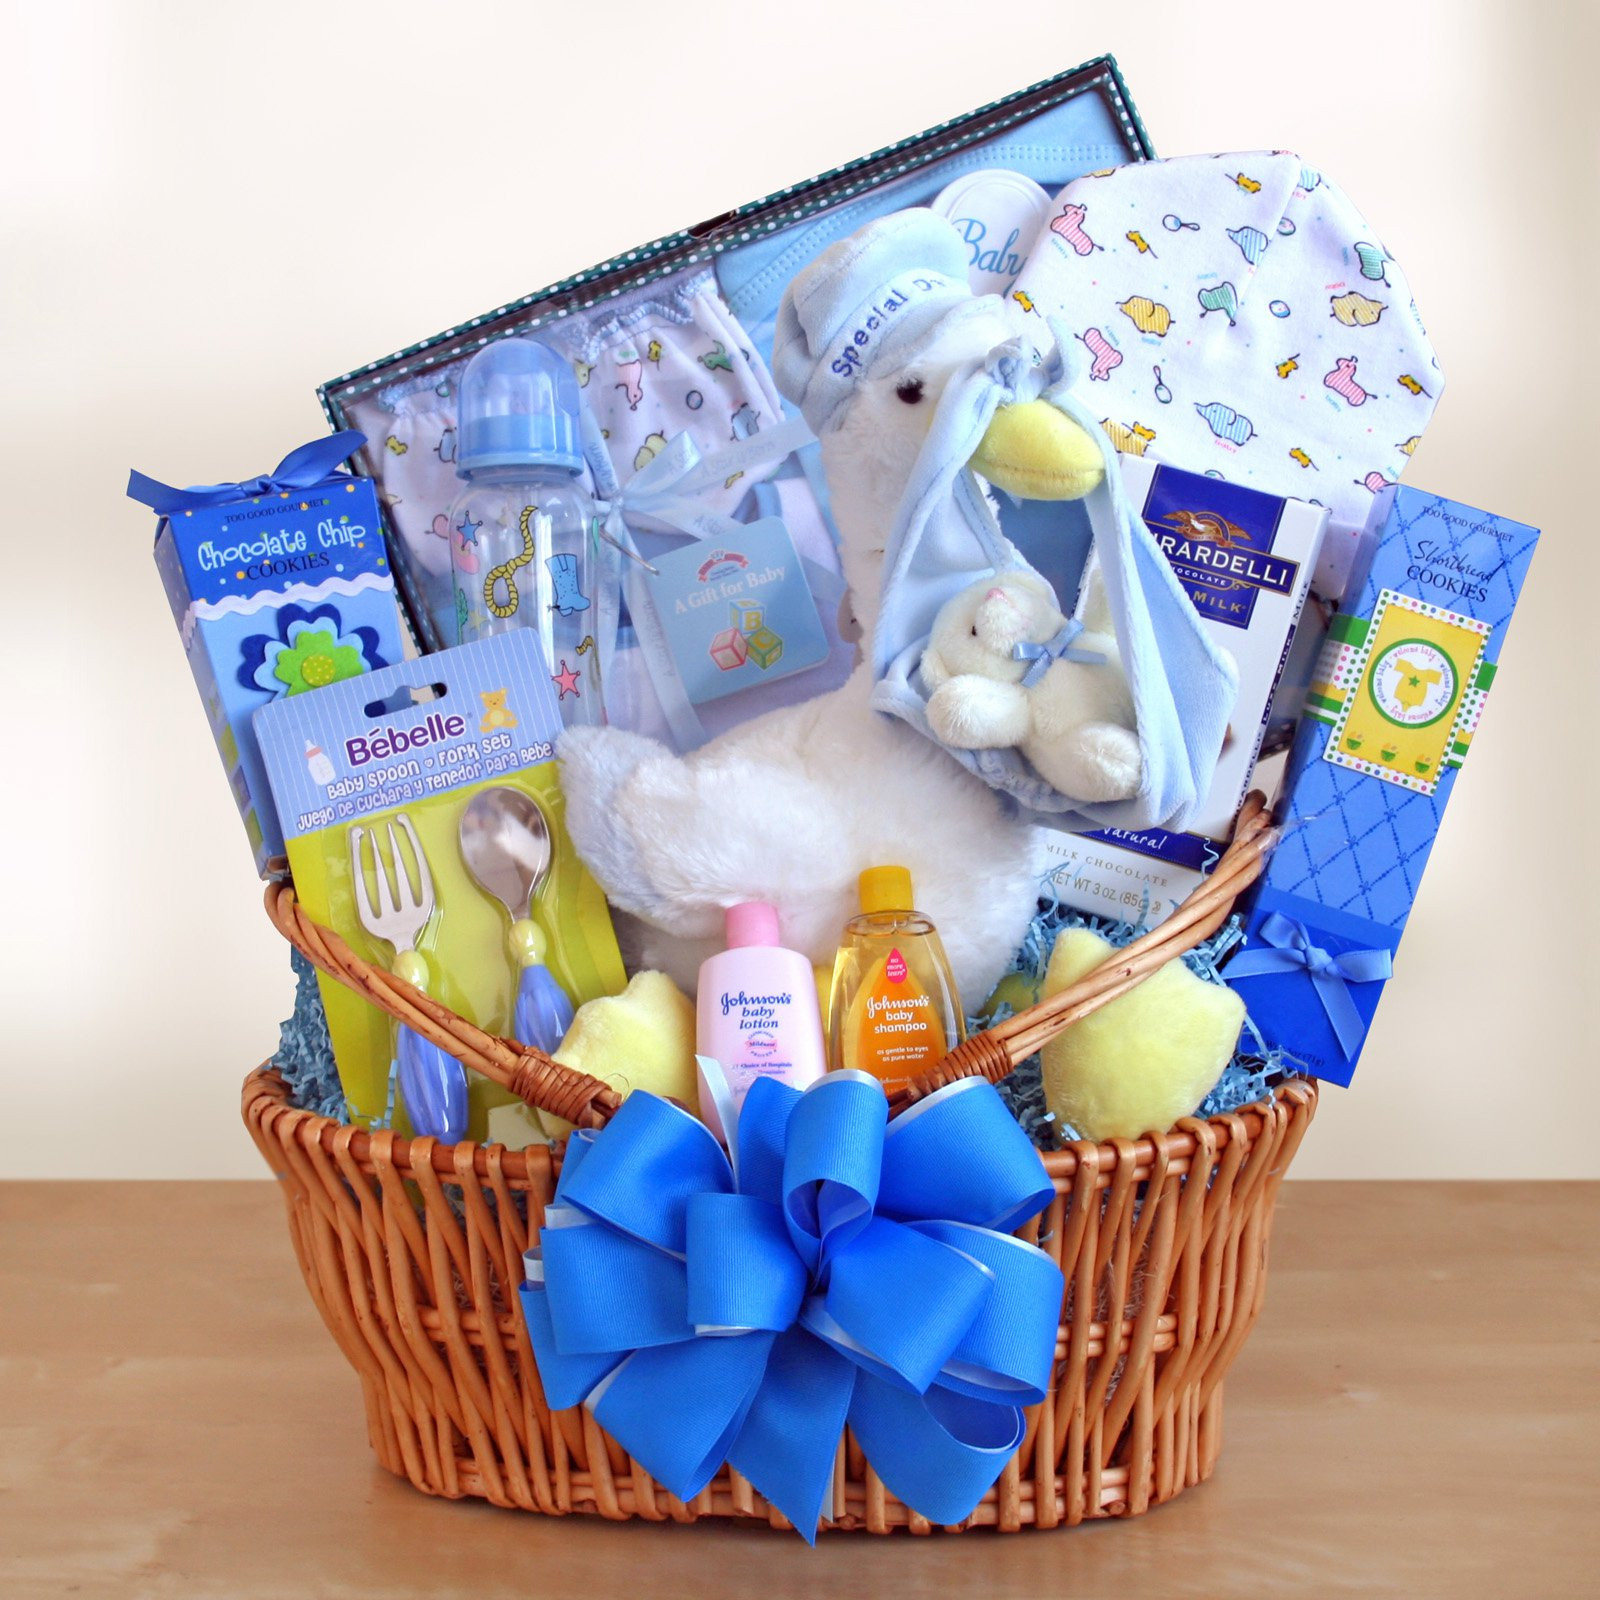 Best ideas about Newborn Baby Boy Gift Ideas . Save or Pin Special Stork Delivery Baby Boy Gift Basket Gift Baskets Now.